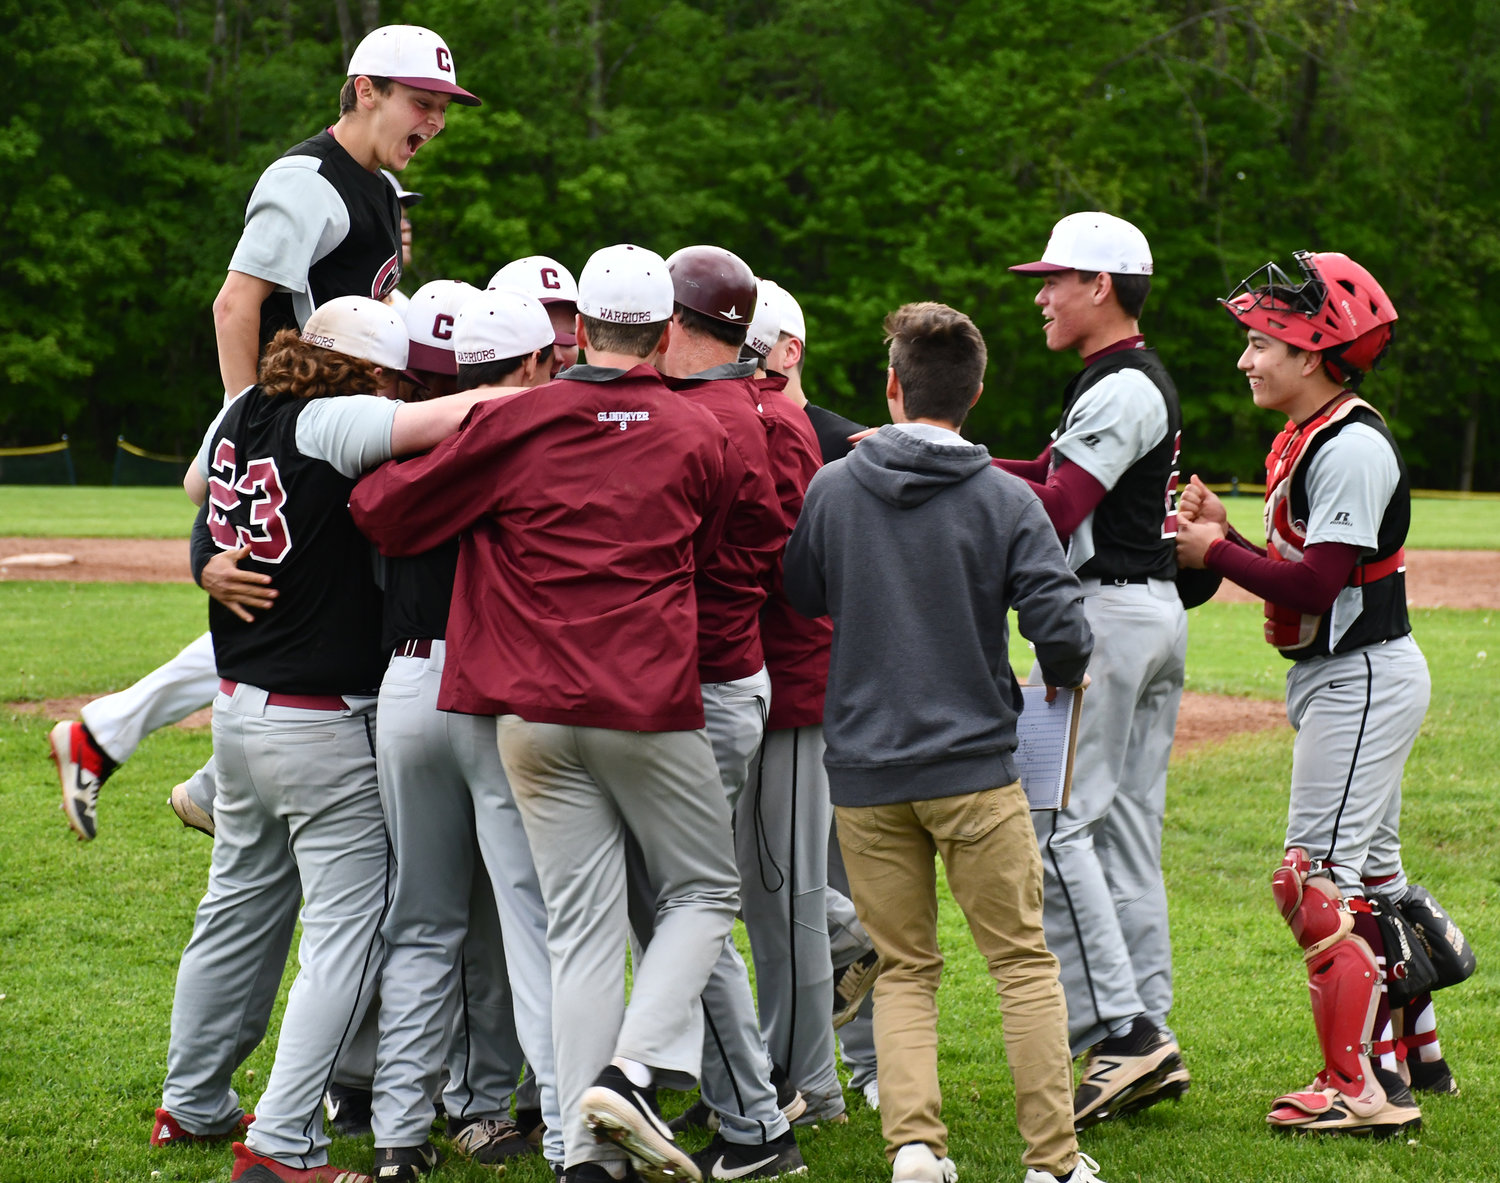 UPSET SPECIAL — The 16th seeded Clinton Warriors ousted the top seed Holland Patent Golden Knights 5-3 in the Section III Class B baseball playoffs on Friday, May 24. The team swarmed winning pitcher Joel Cleveland after the final out. The Warriors were coming off an 18-2 win in the opening round against Cazenovia at home on Thursday, May 23. Clinton was slated to visit No. 8 seed Solvay on Tuesday, May 28.